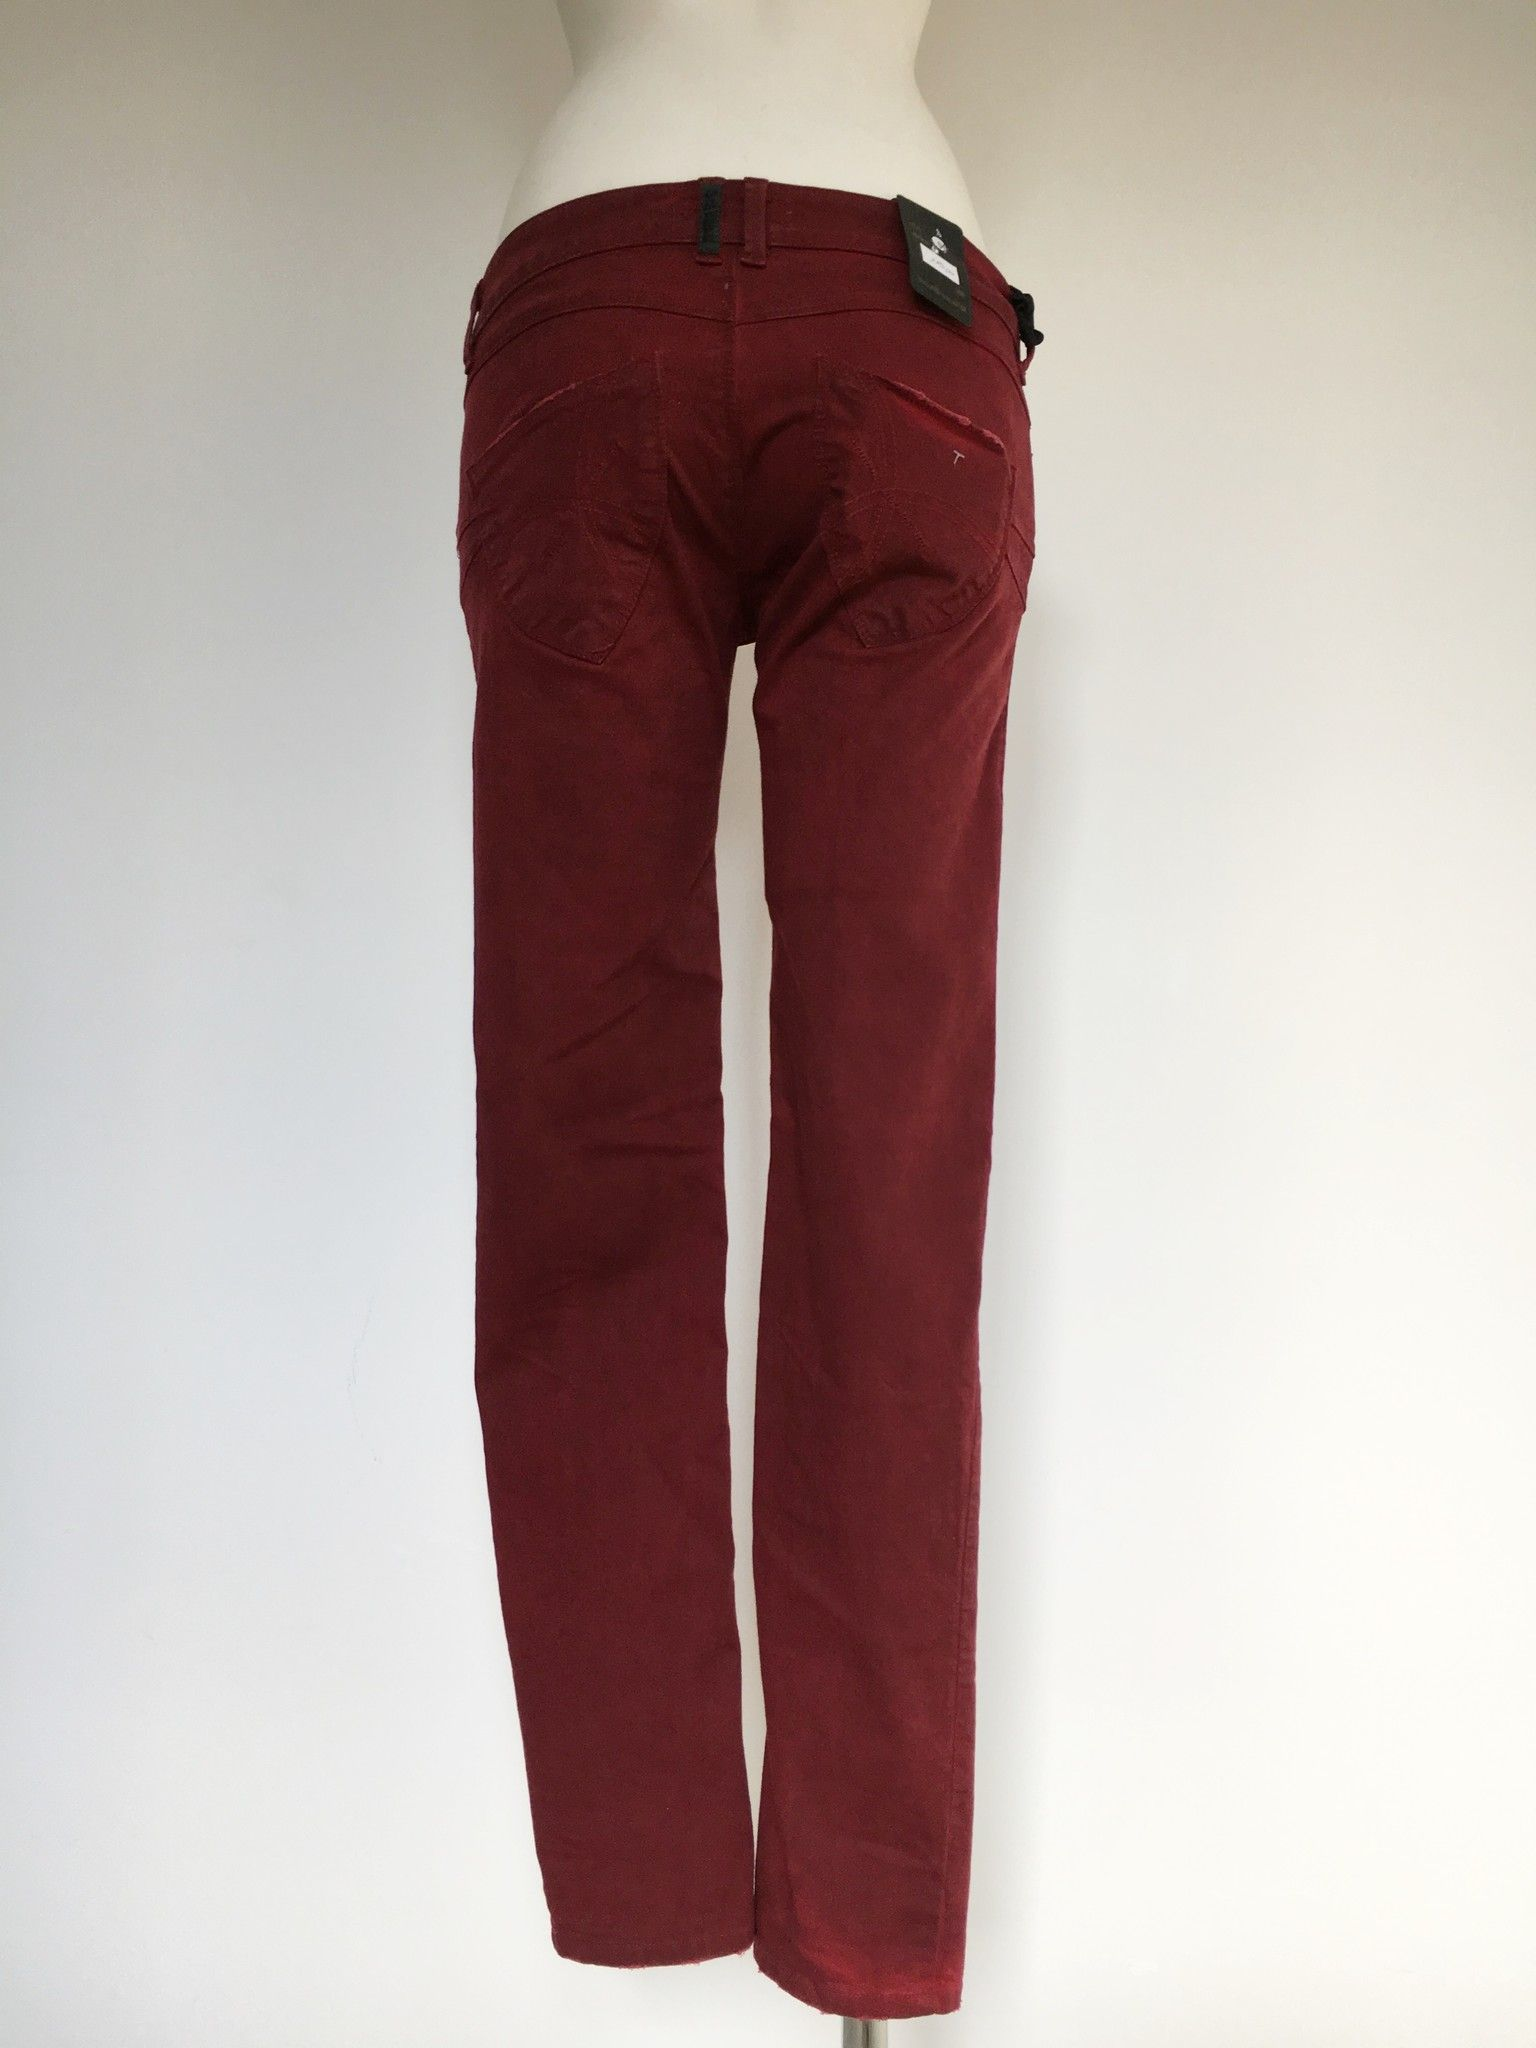 Sexy Woman Long Jeans with Pointy Pockets Cod.4811